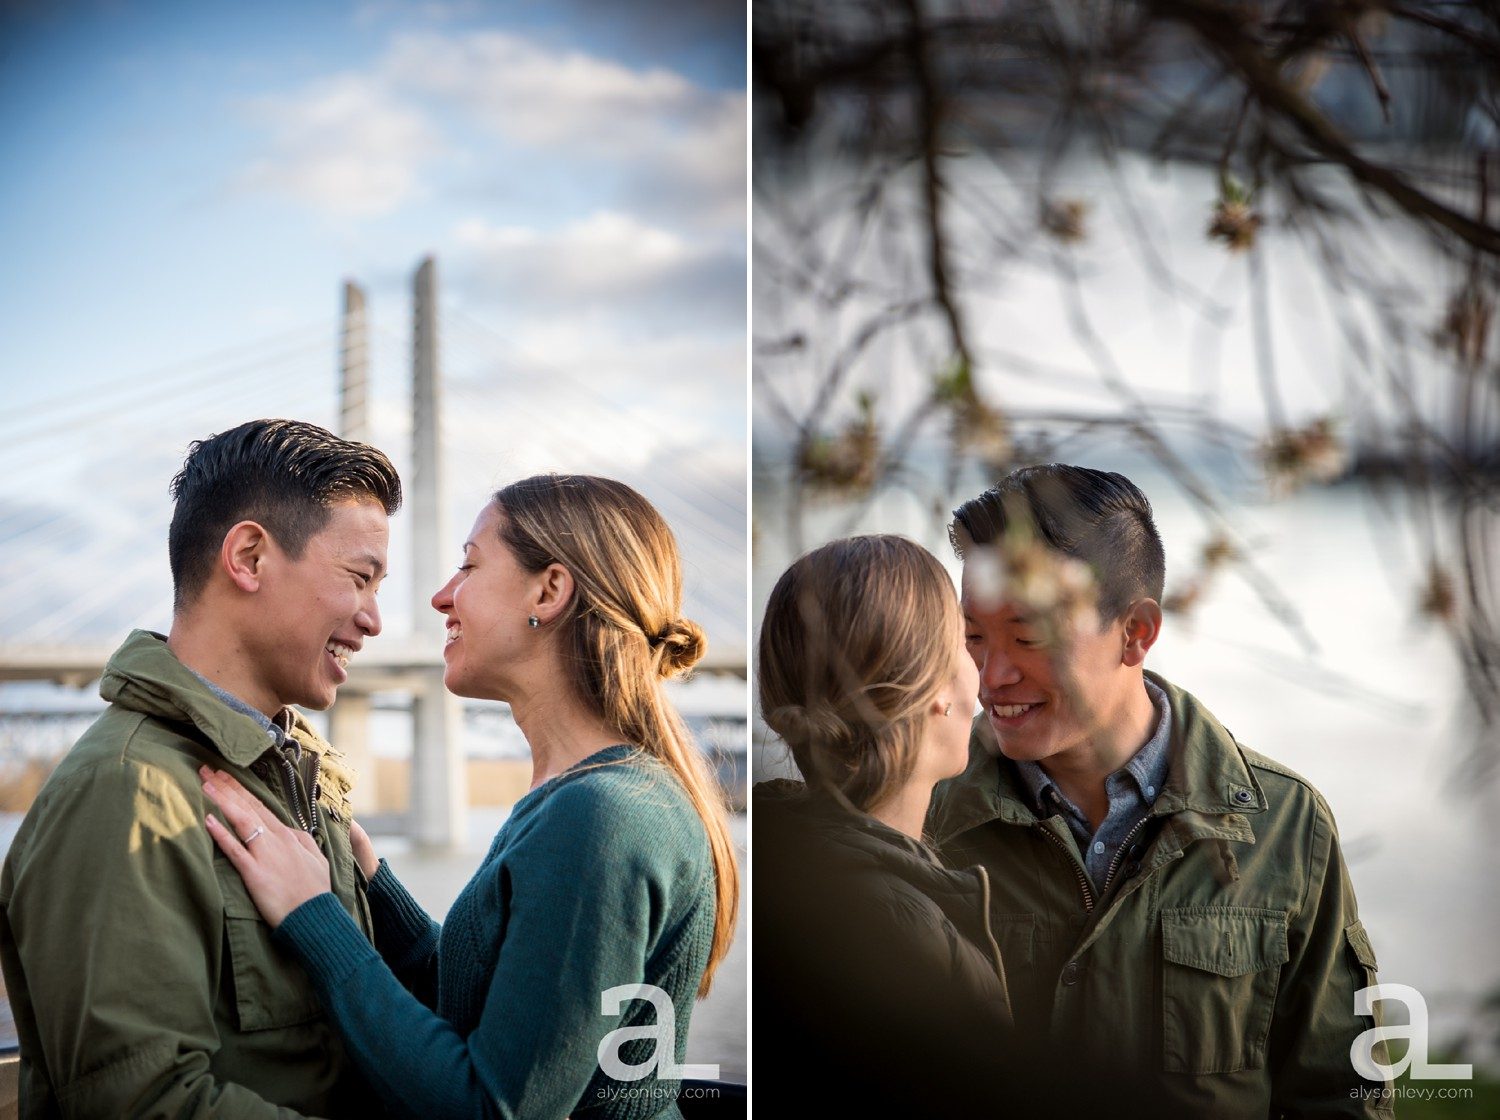 Portland-Tilikum-Bridge-Proposal-Engagement-Photography_0012.jpg